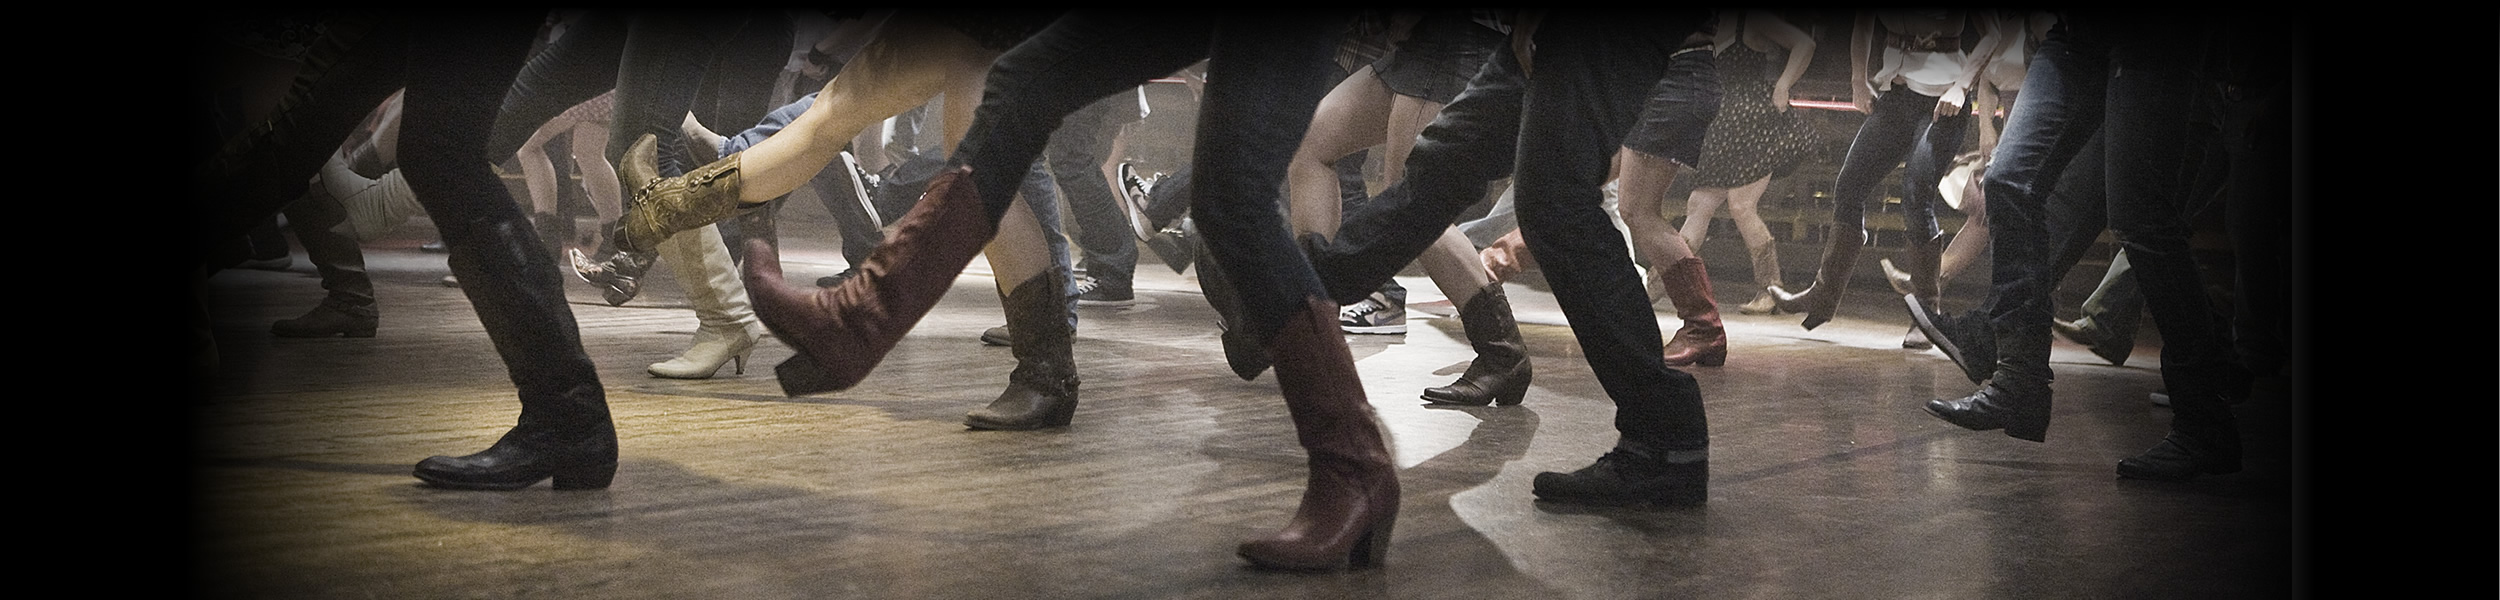 The Stockyard - Line Dance Lessons